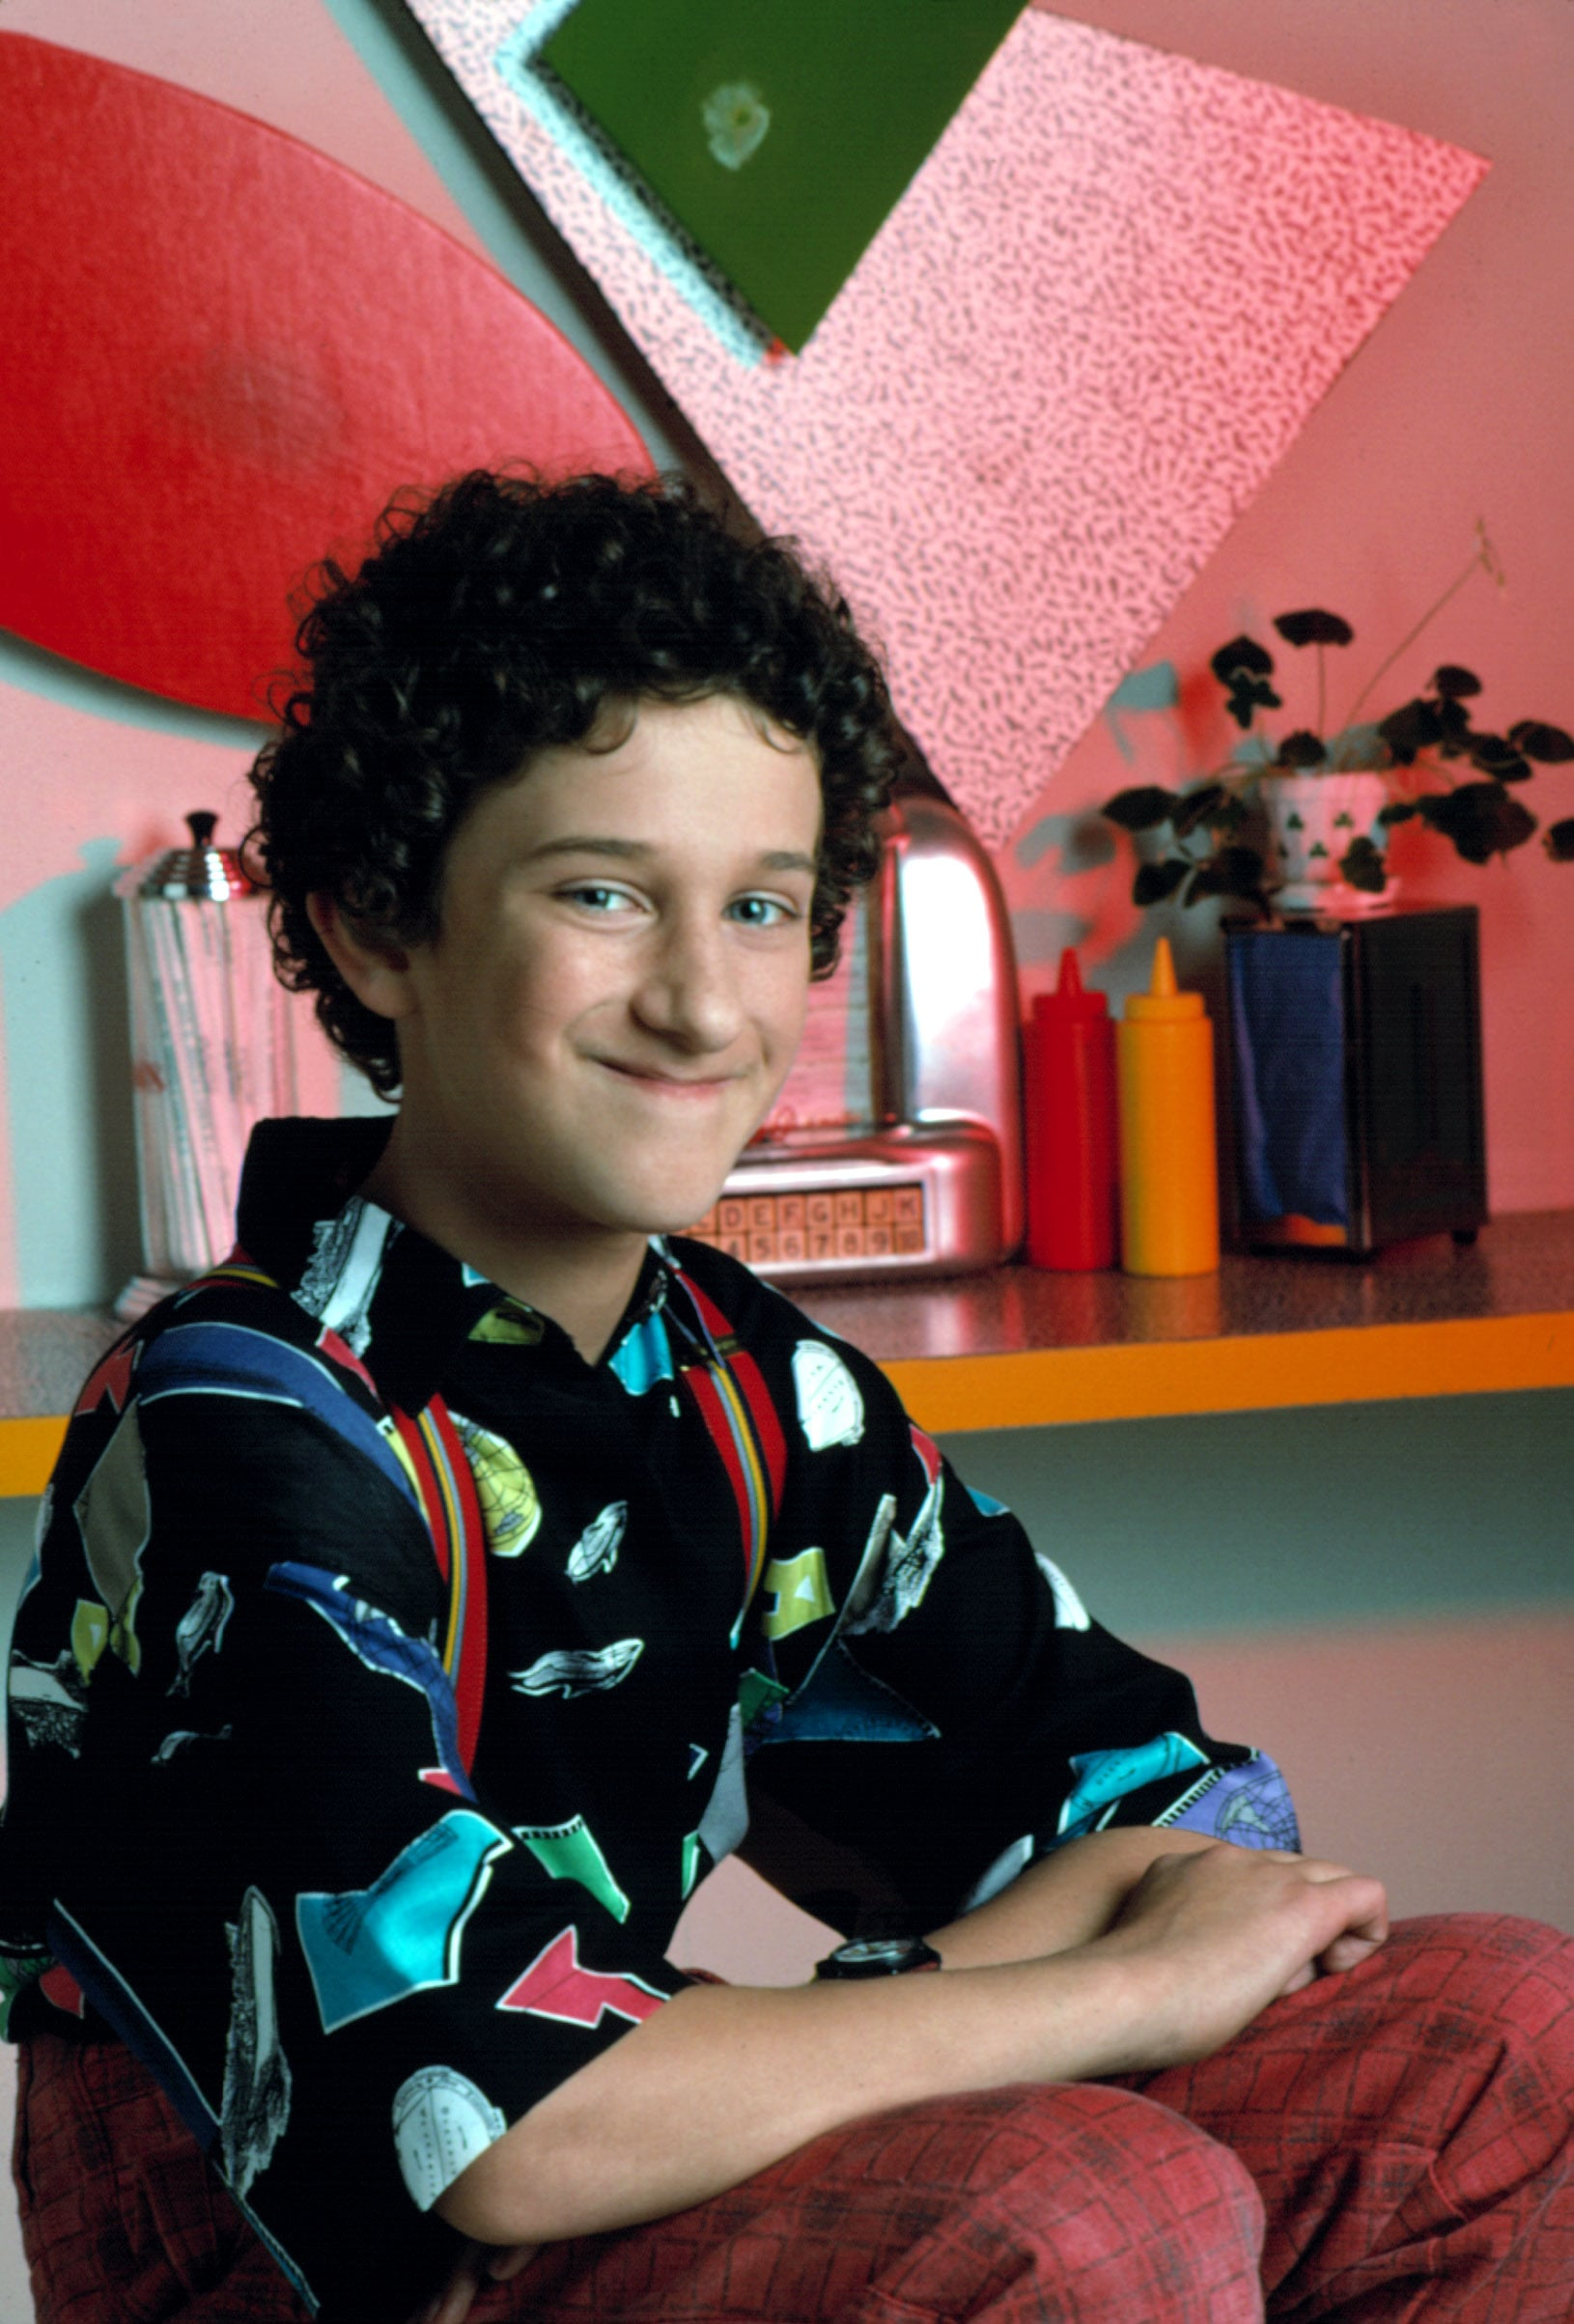 SAVED BY THE BELL, Dustin Diamond (as Screech), 1989-1993